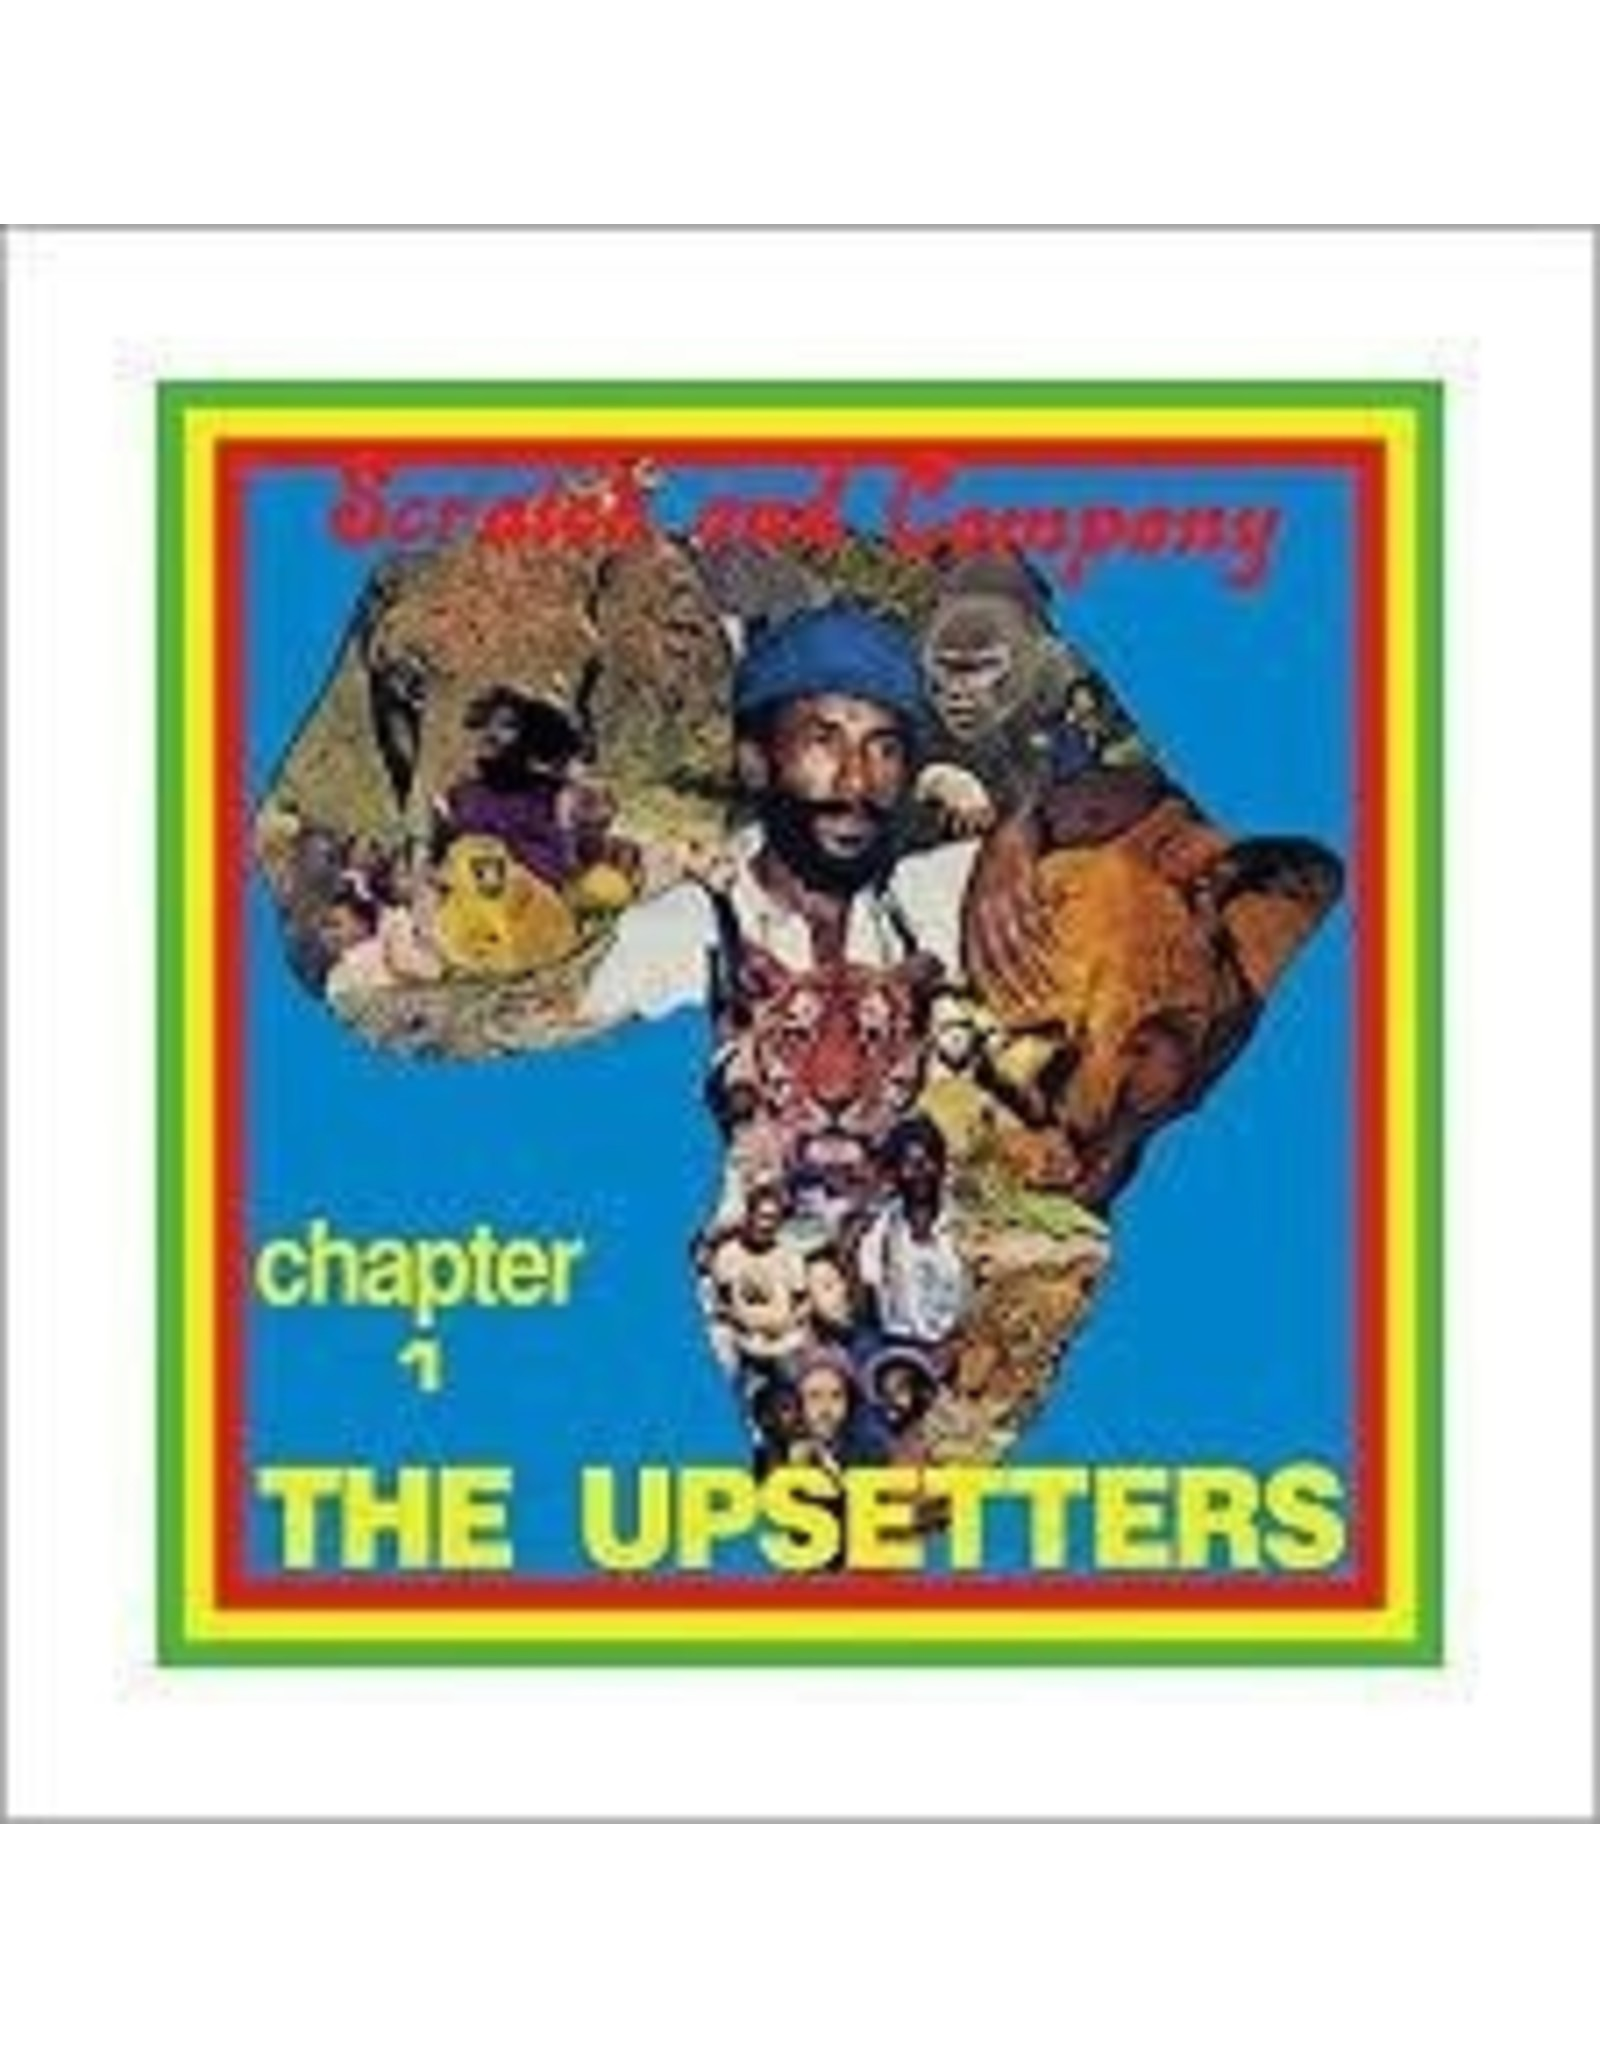 New Vinyl Lee Perry & The Upsetters - Chapter 1 LP